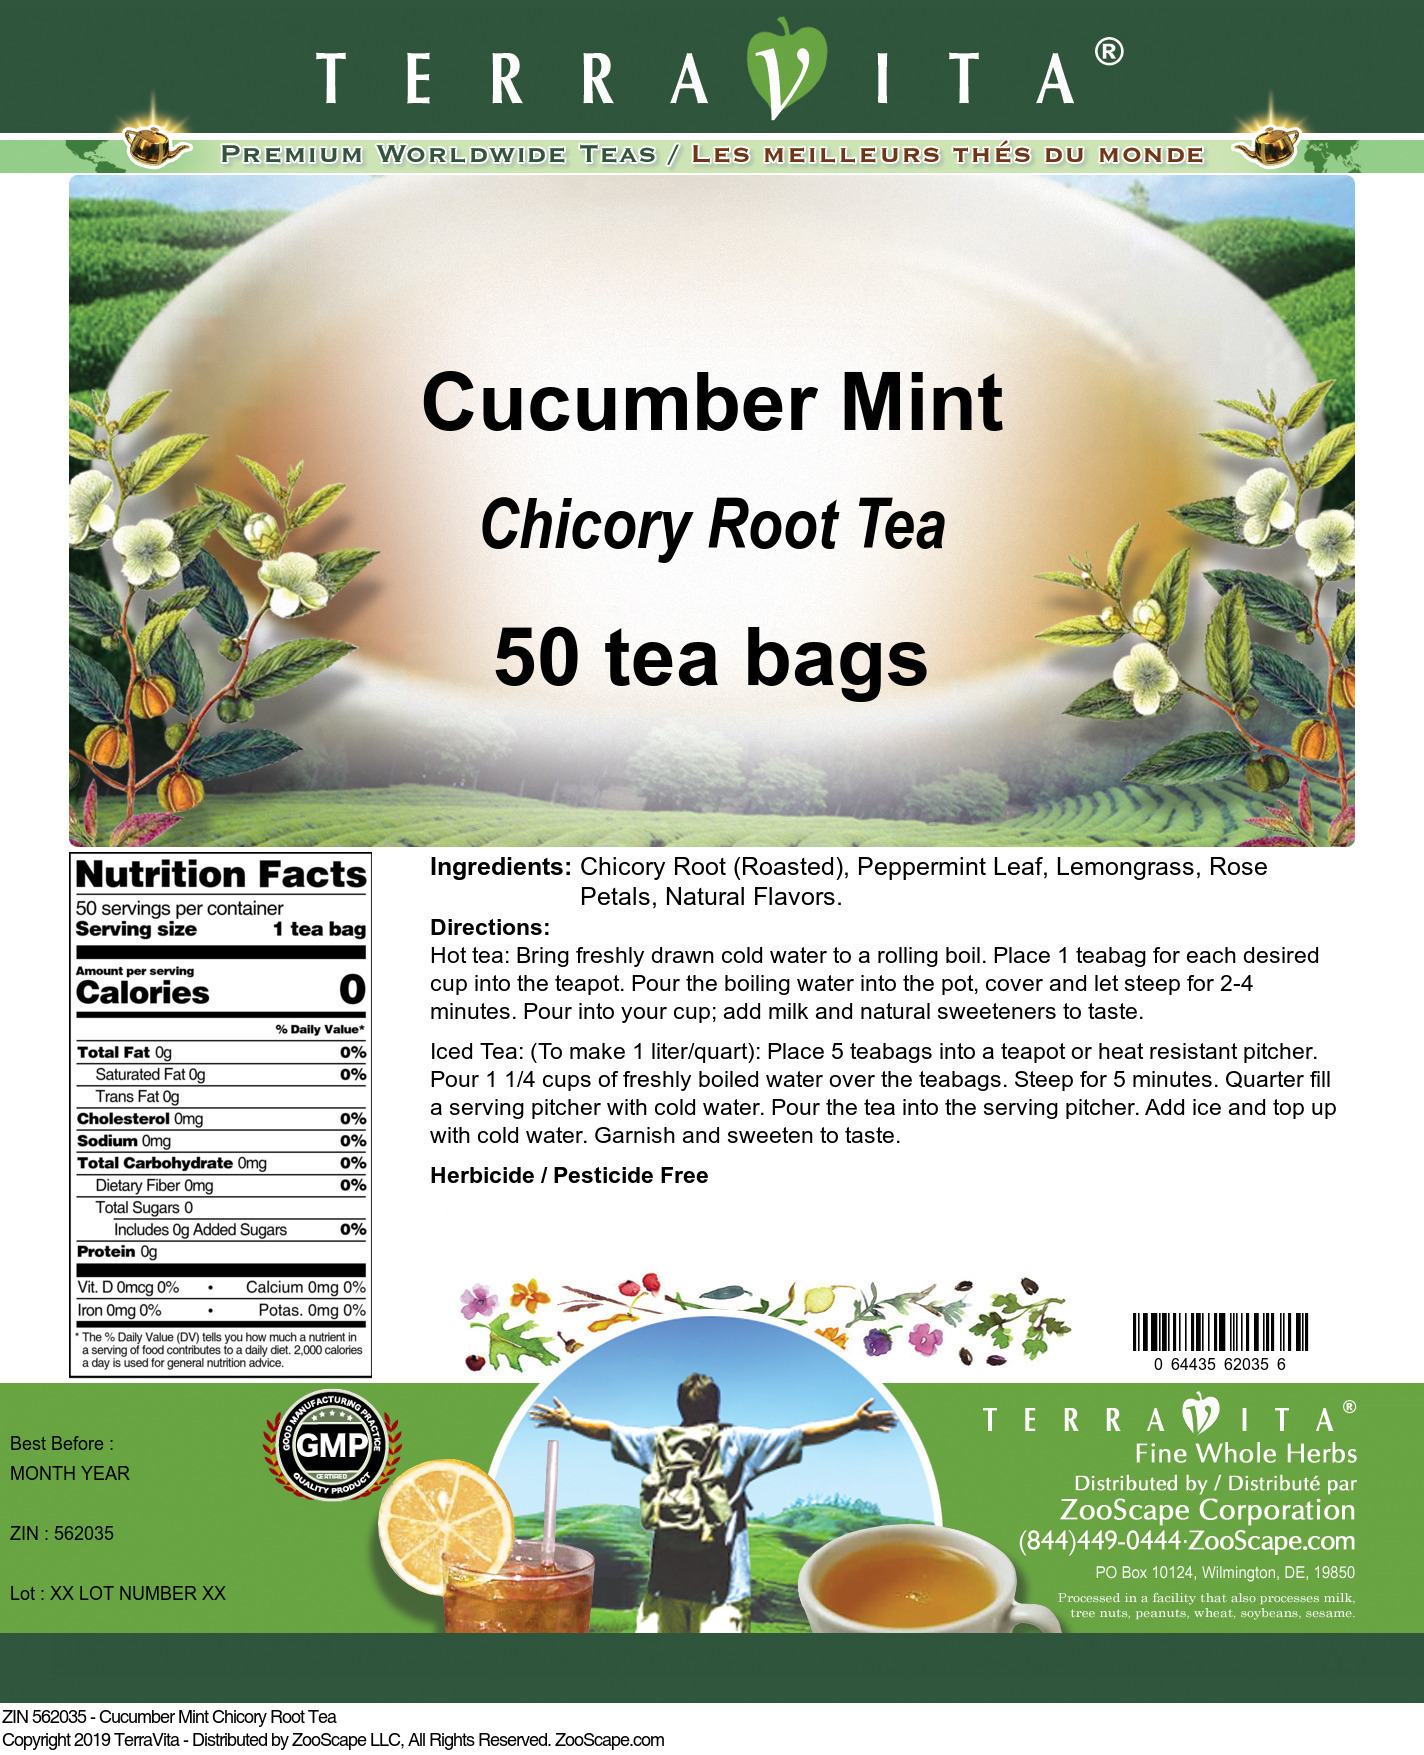 Cucumber Mint Chicory Root